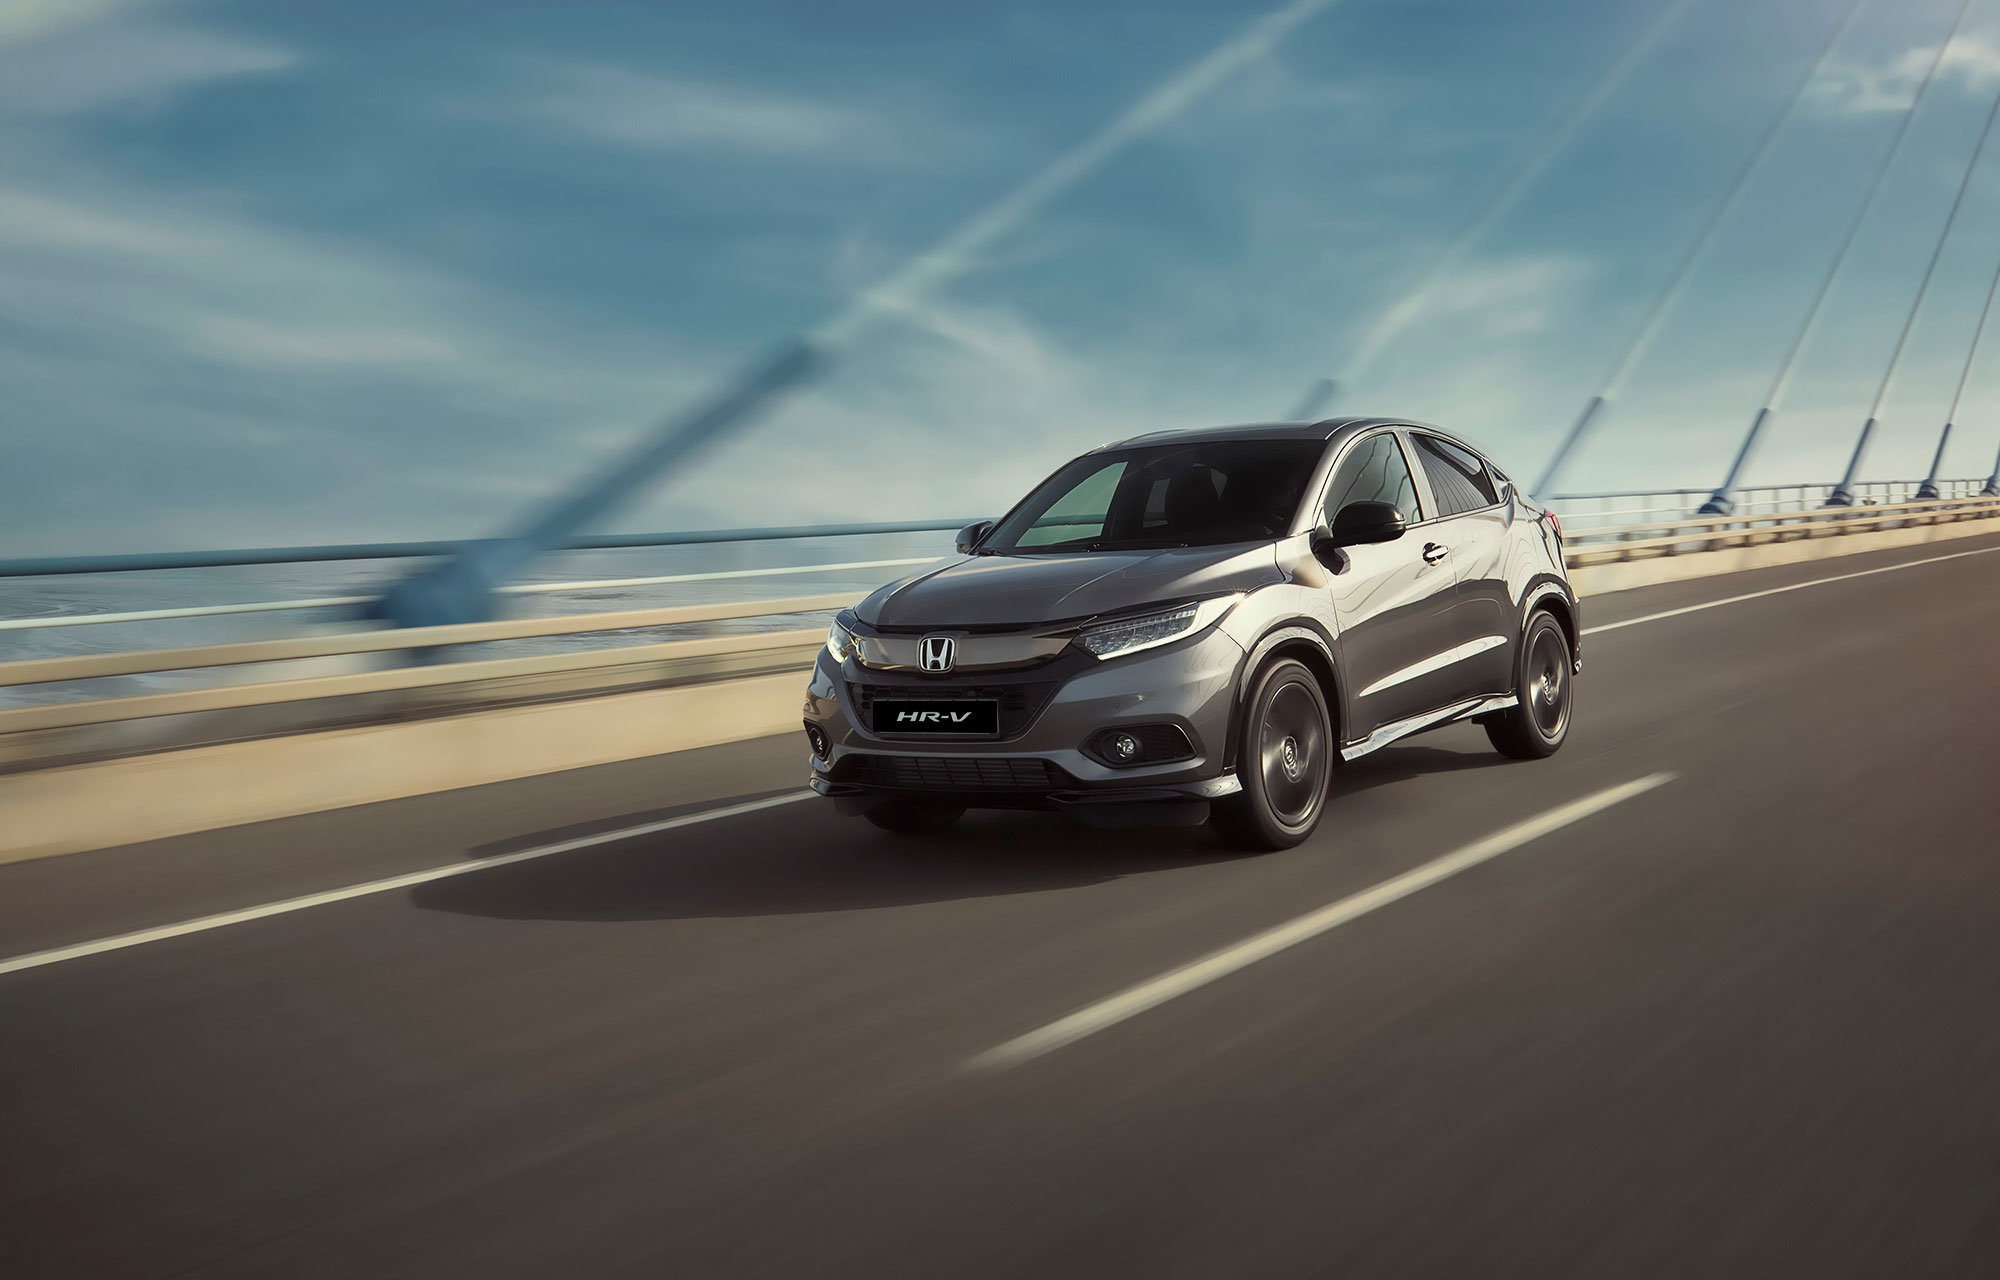 The all-new 2019 Honda HR-V